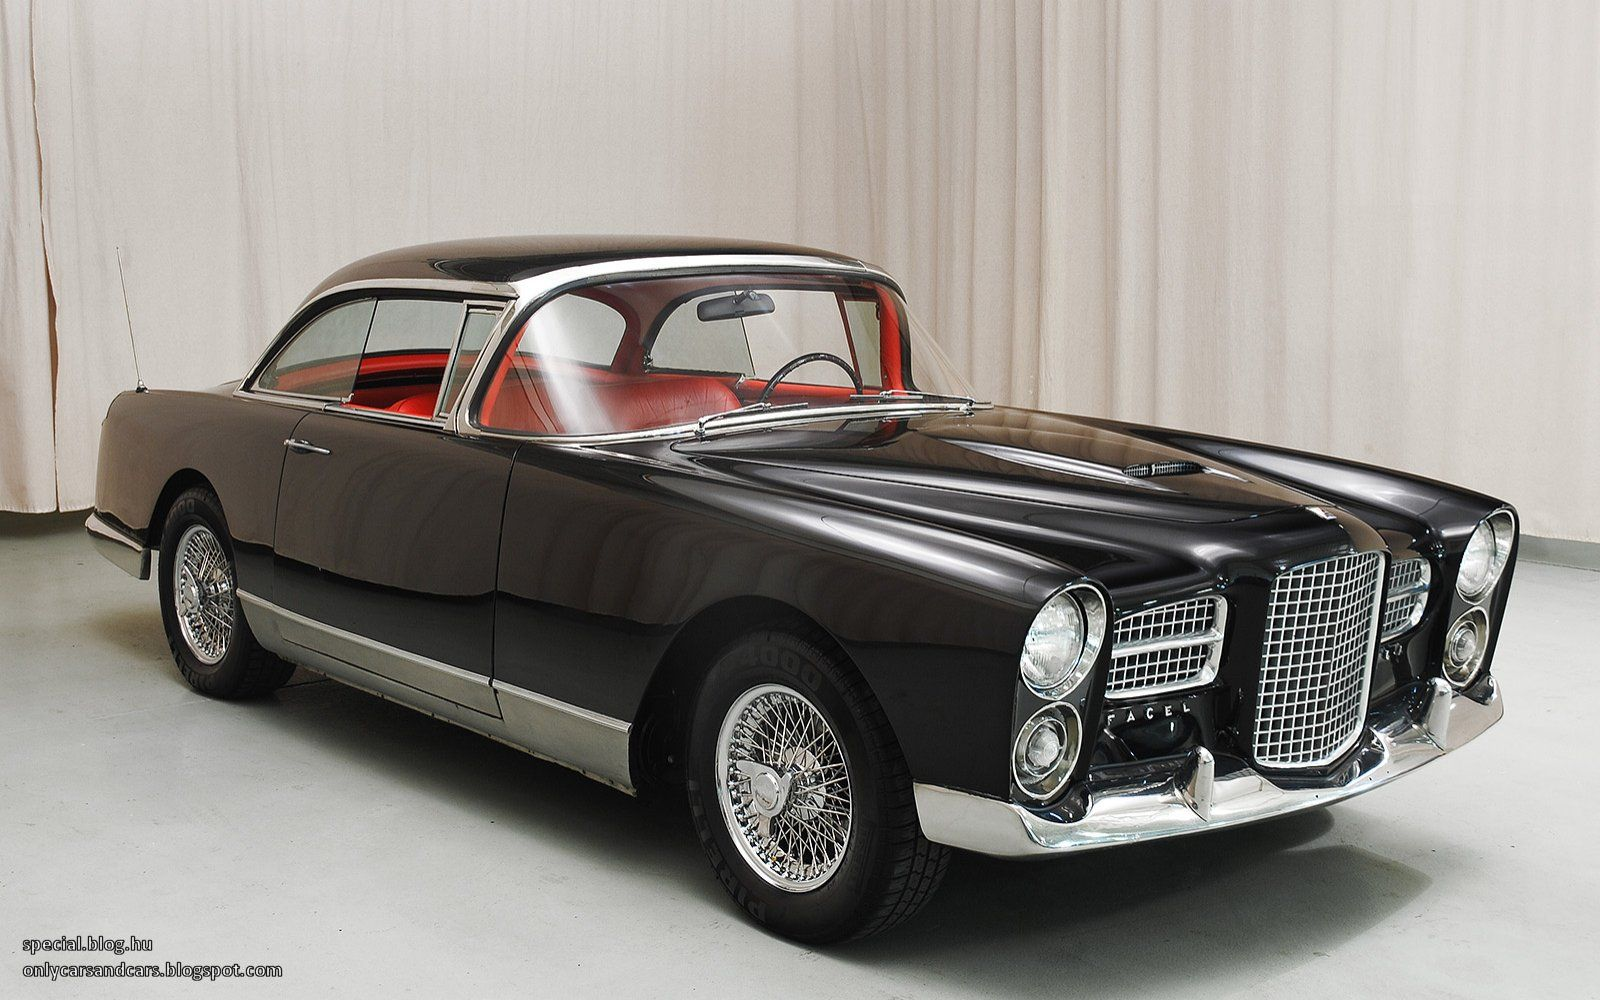 facel vega hk 500 only cars and cars. Black Bedroom Furniture Sets. Home Design Ideas